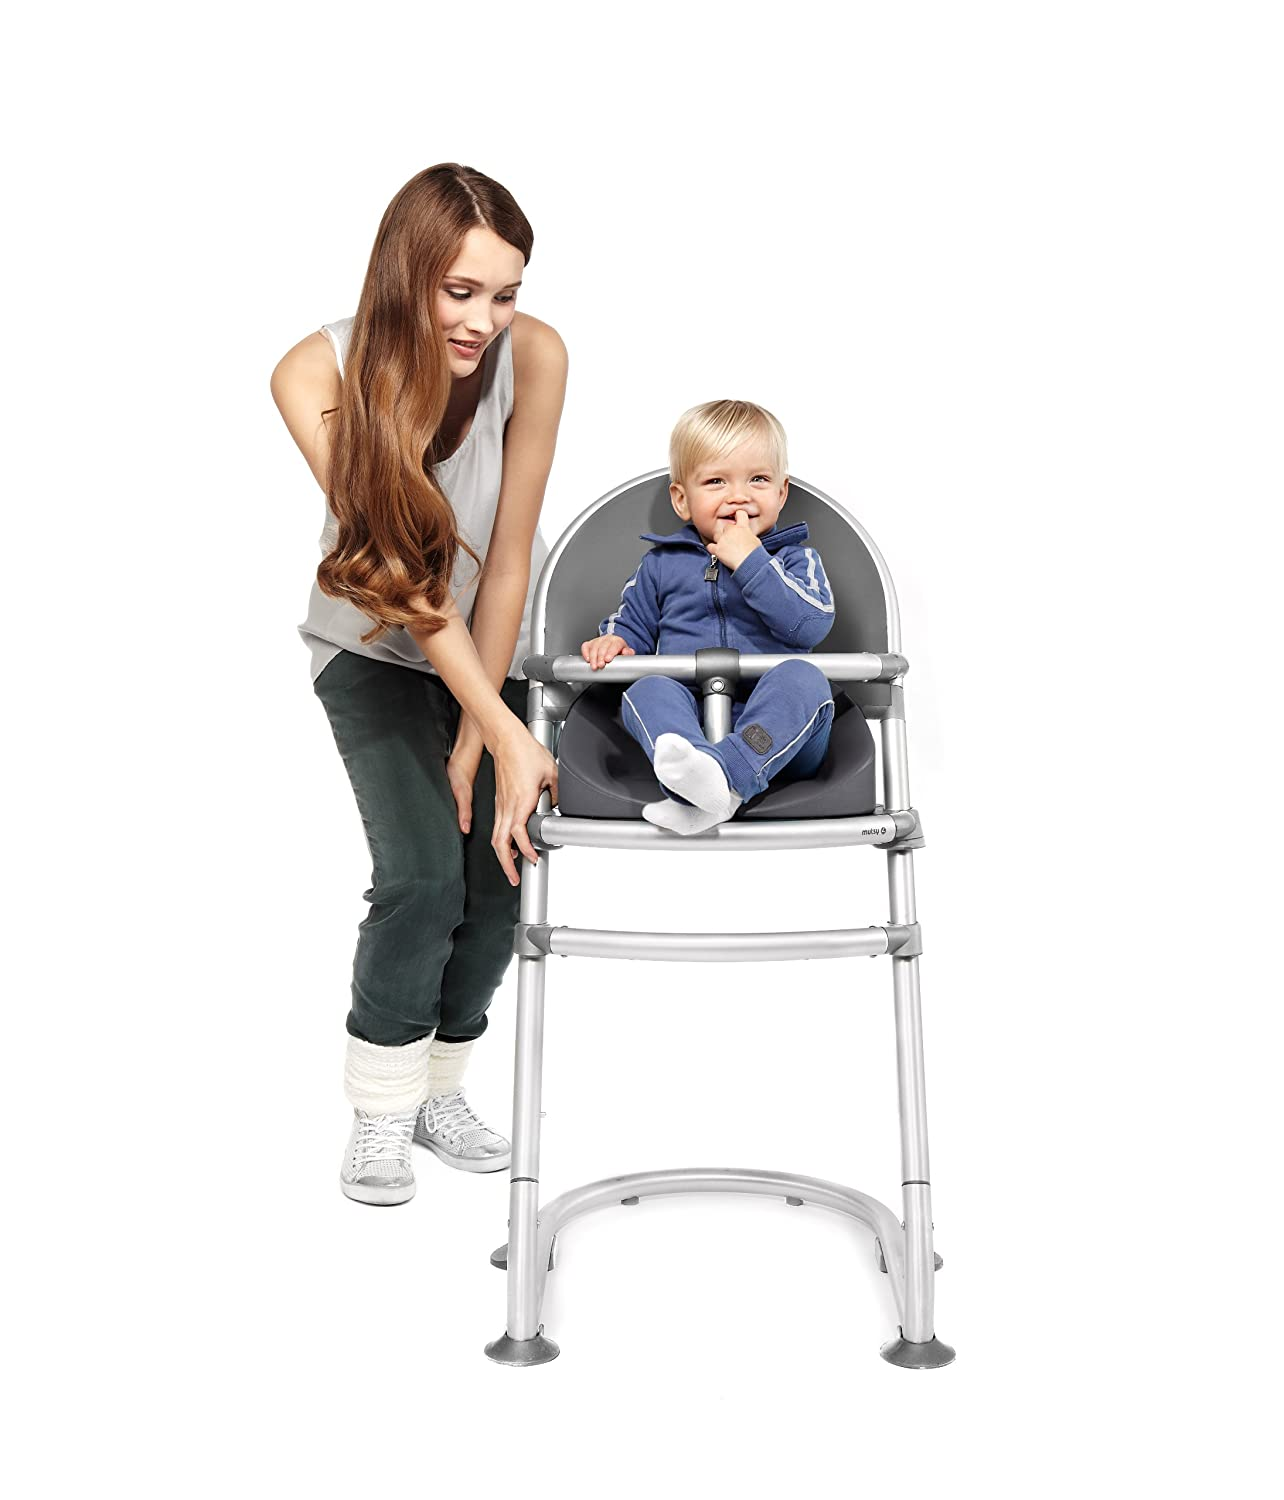 Amazon Mutsy Easygrow High Chair White Discontinued by